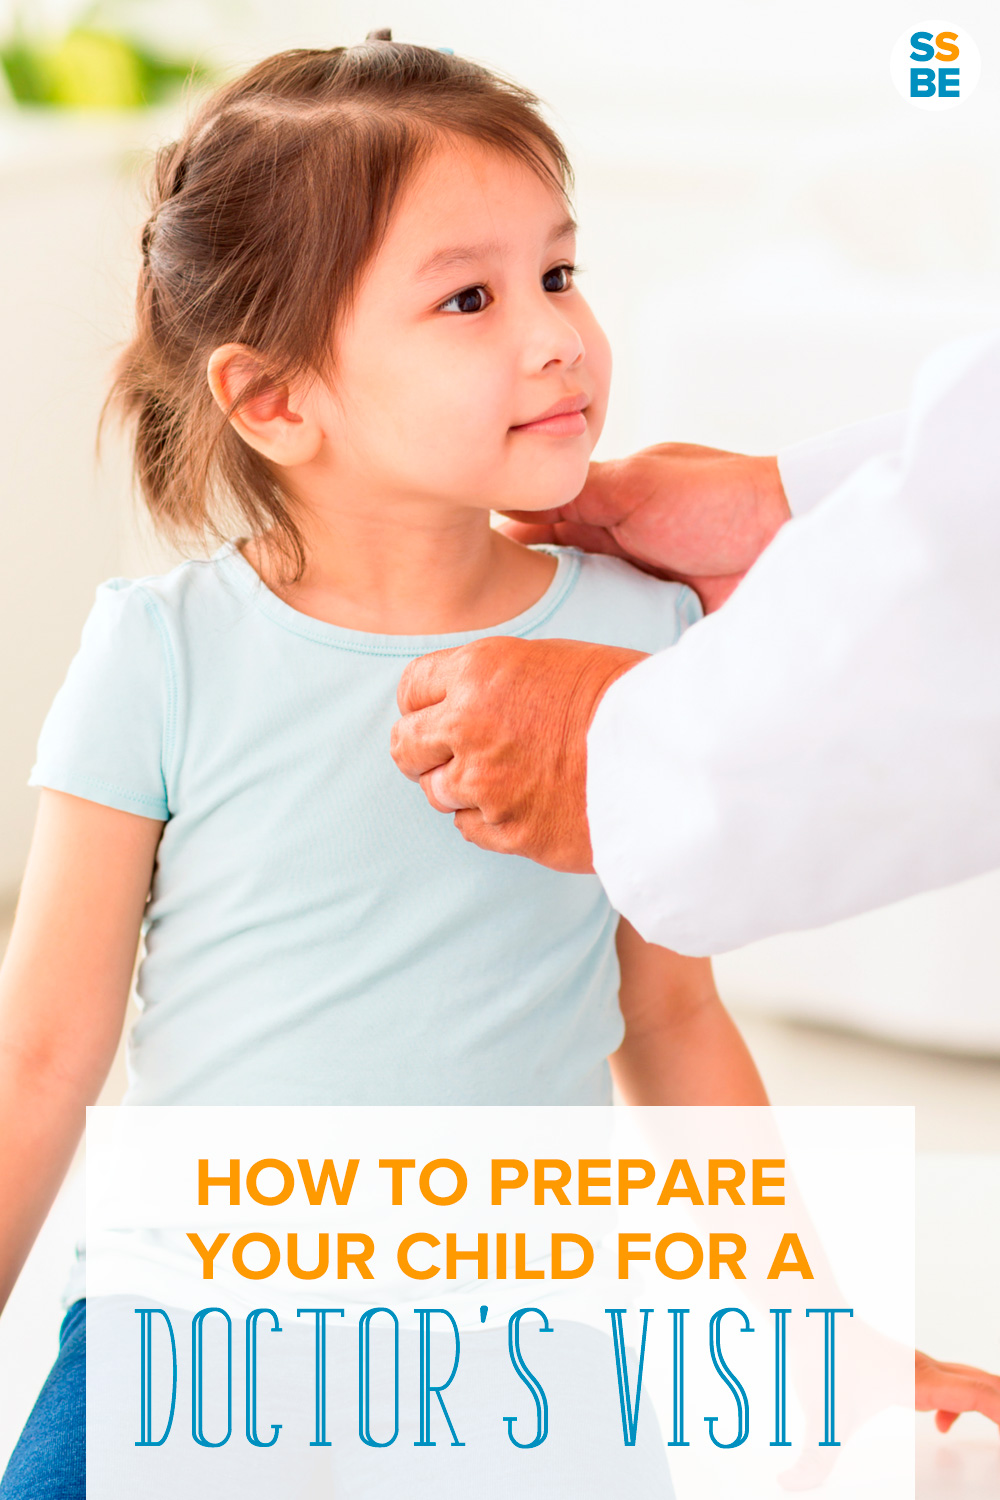 Visiting your child's pediatrician can be scary for many kids. Here's how to prepare your child for a doctor's visit to reduce his fears and make the experience a positive one.